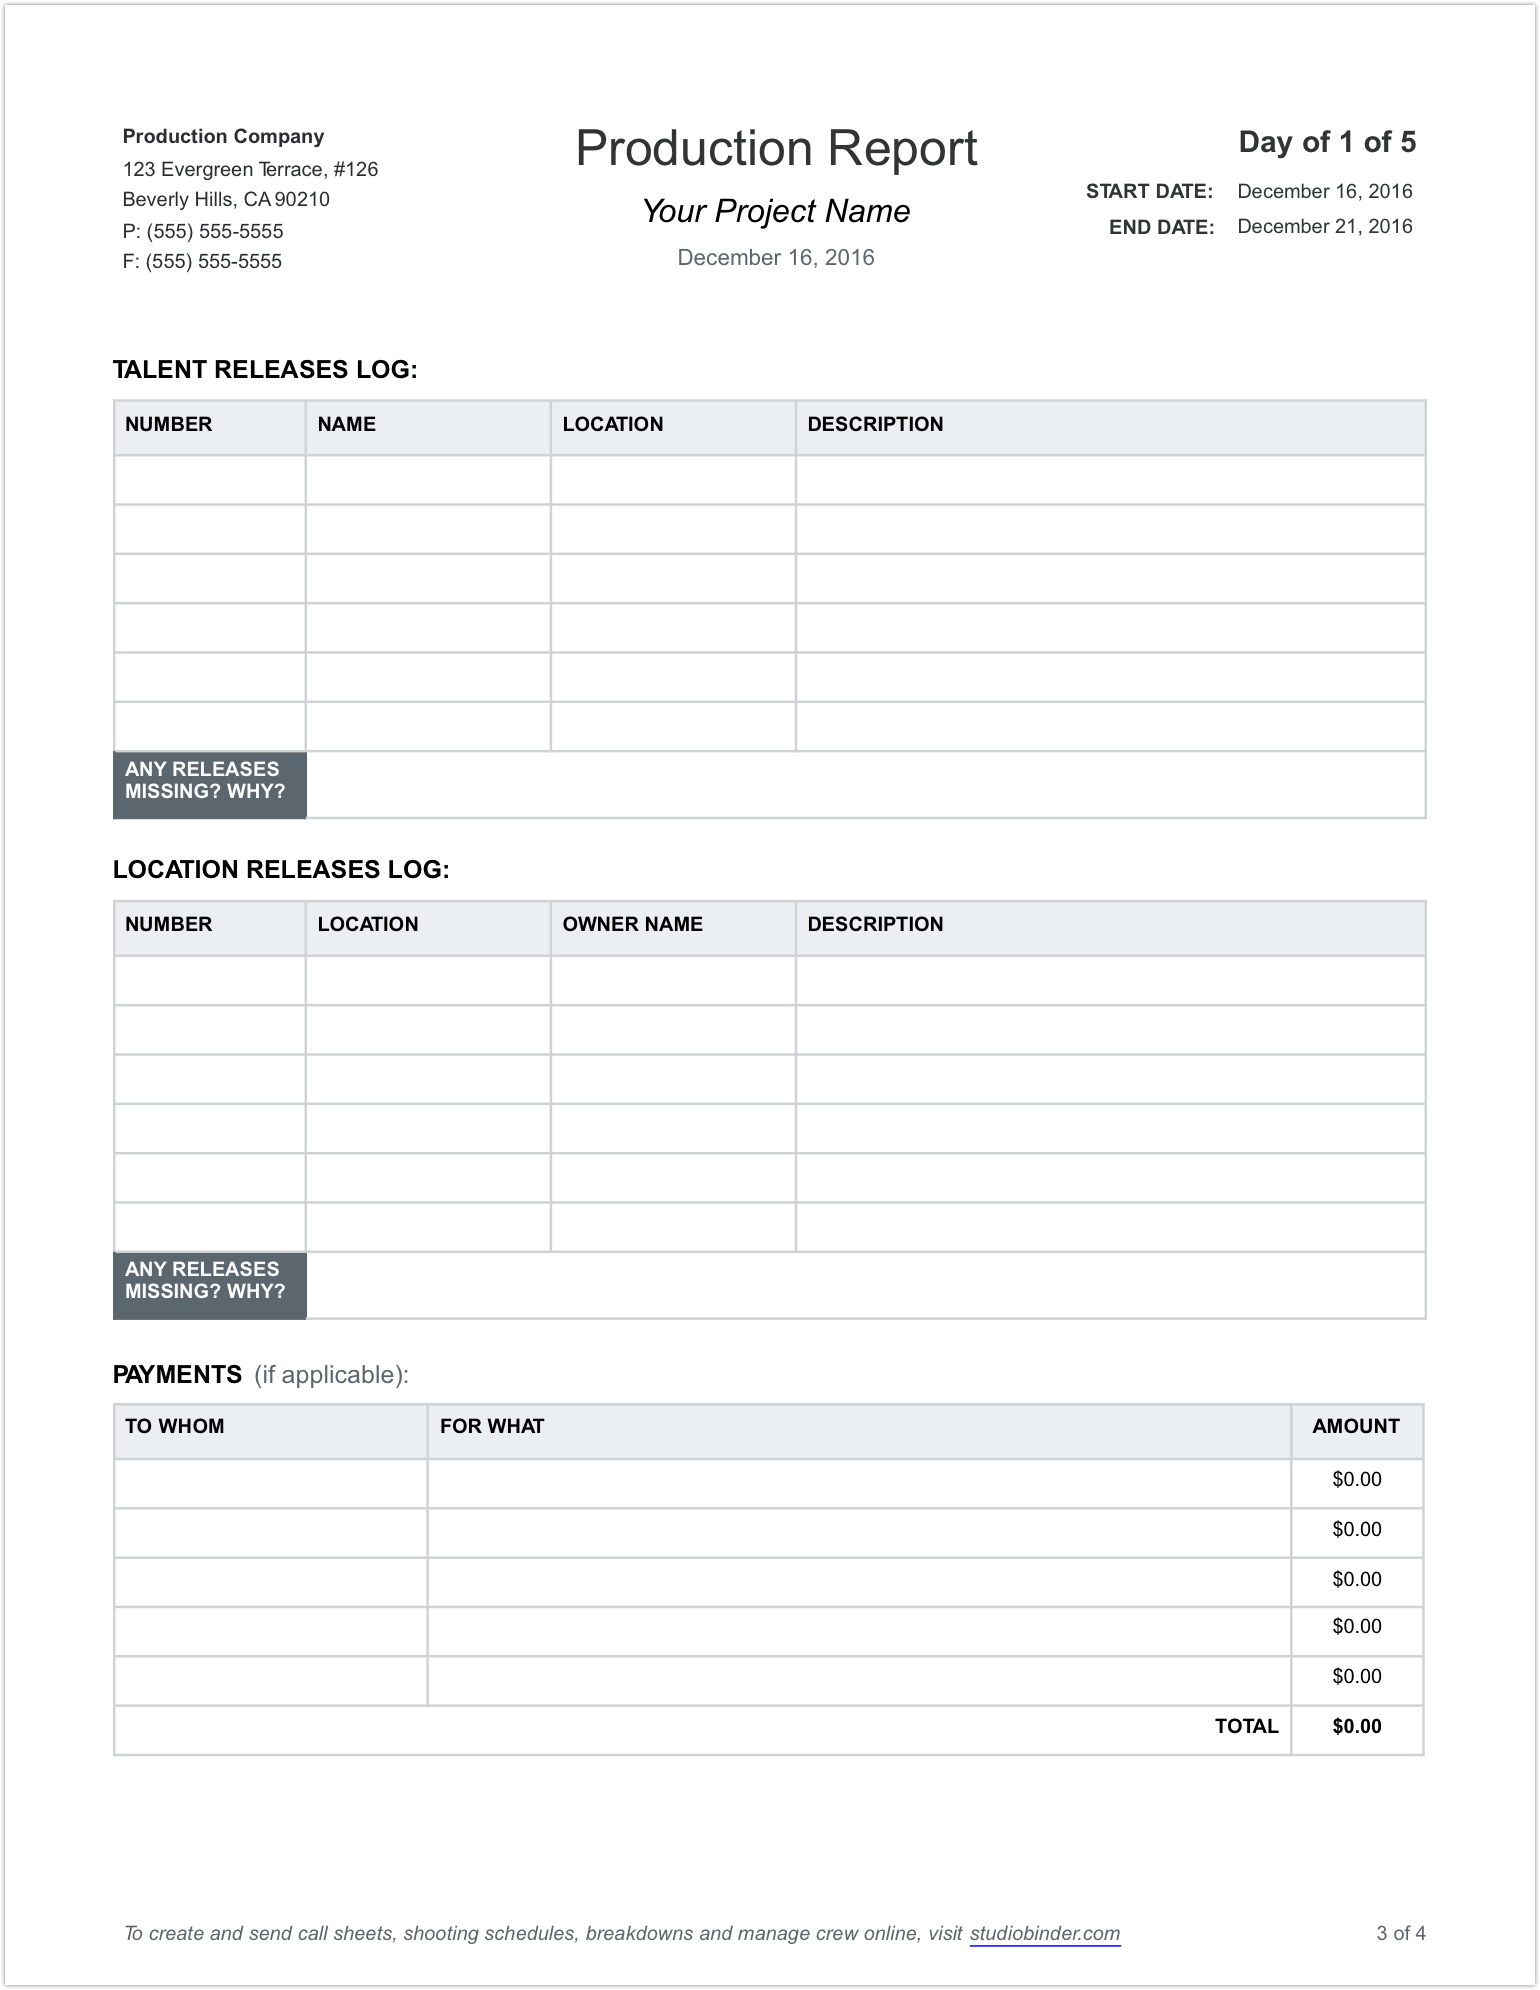 Daily Production Report Template - Page 3 - StudioBinder